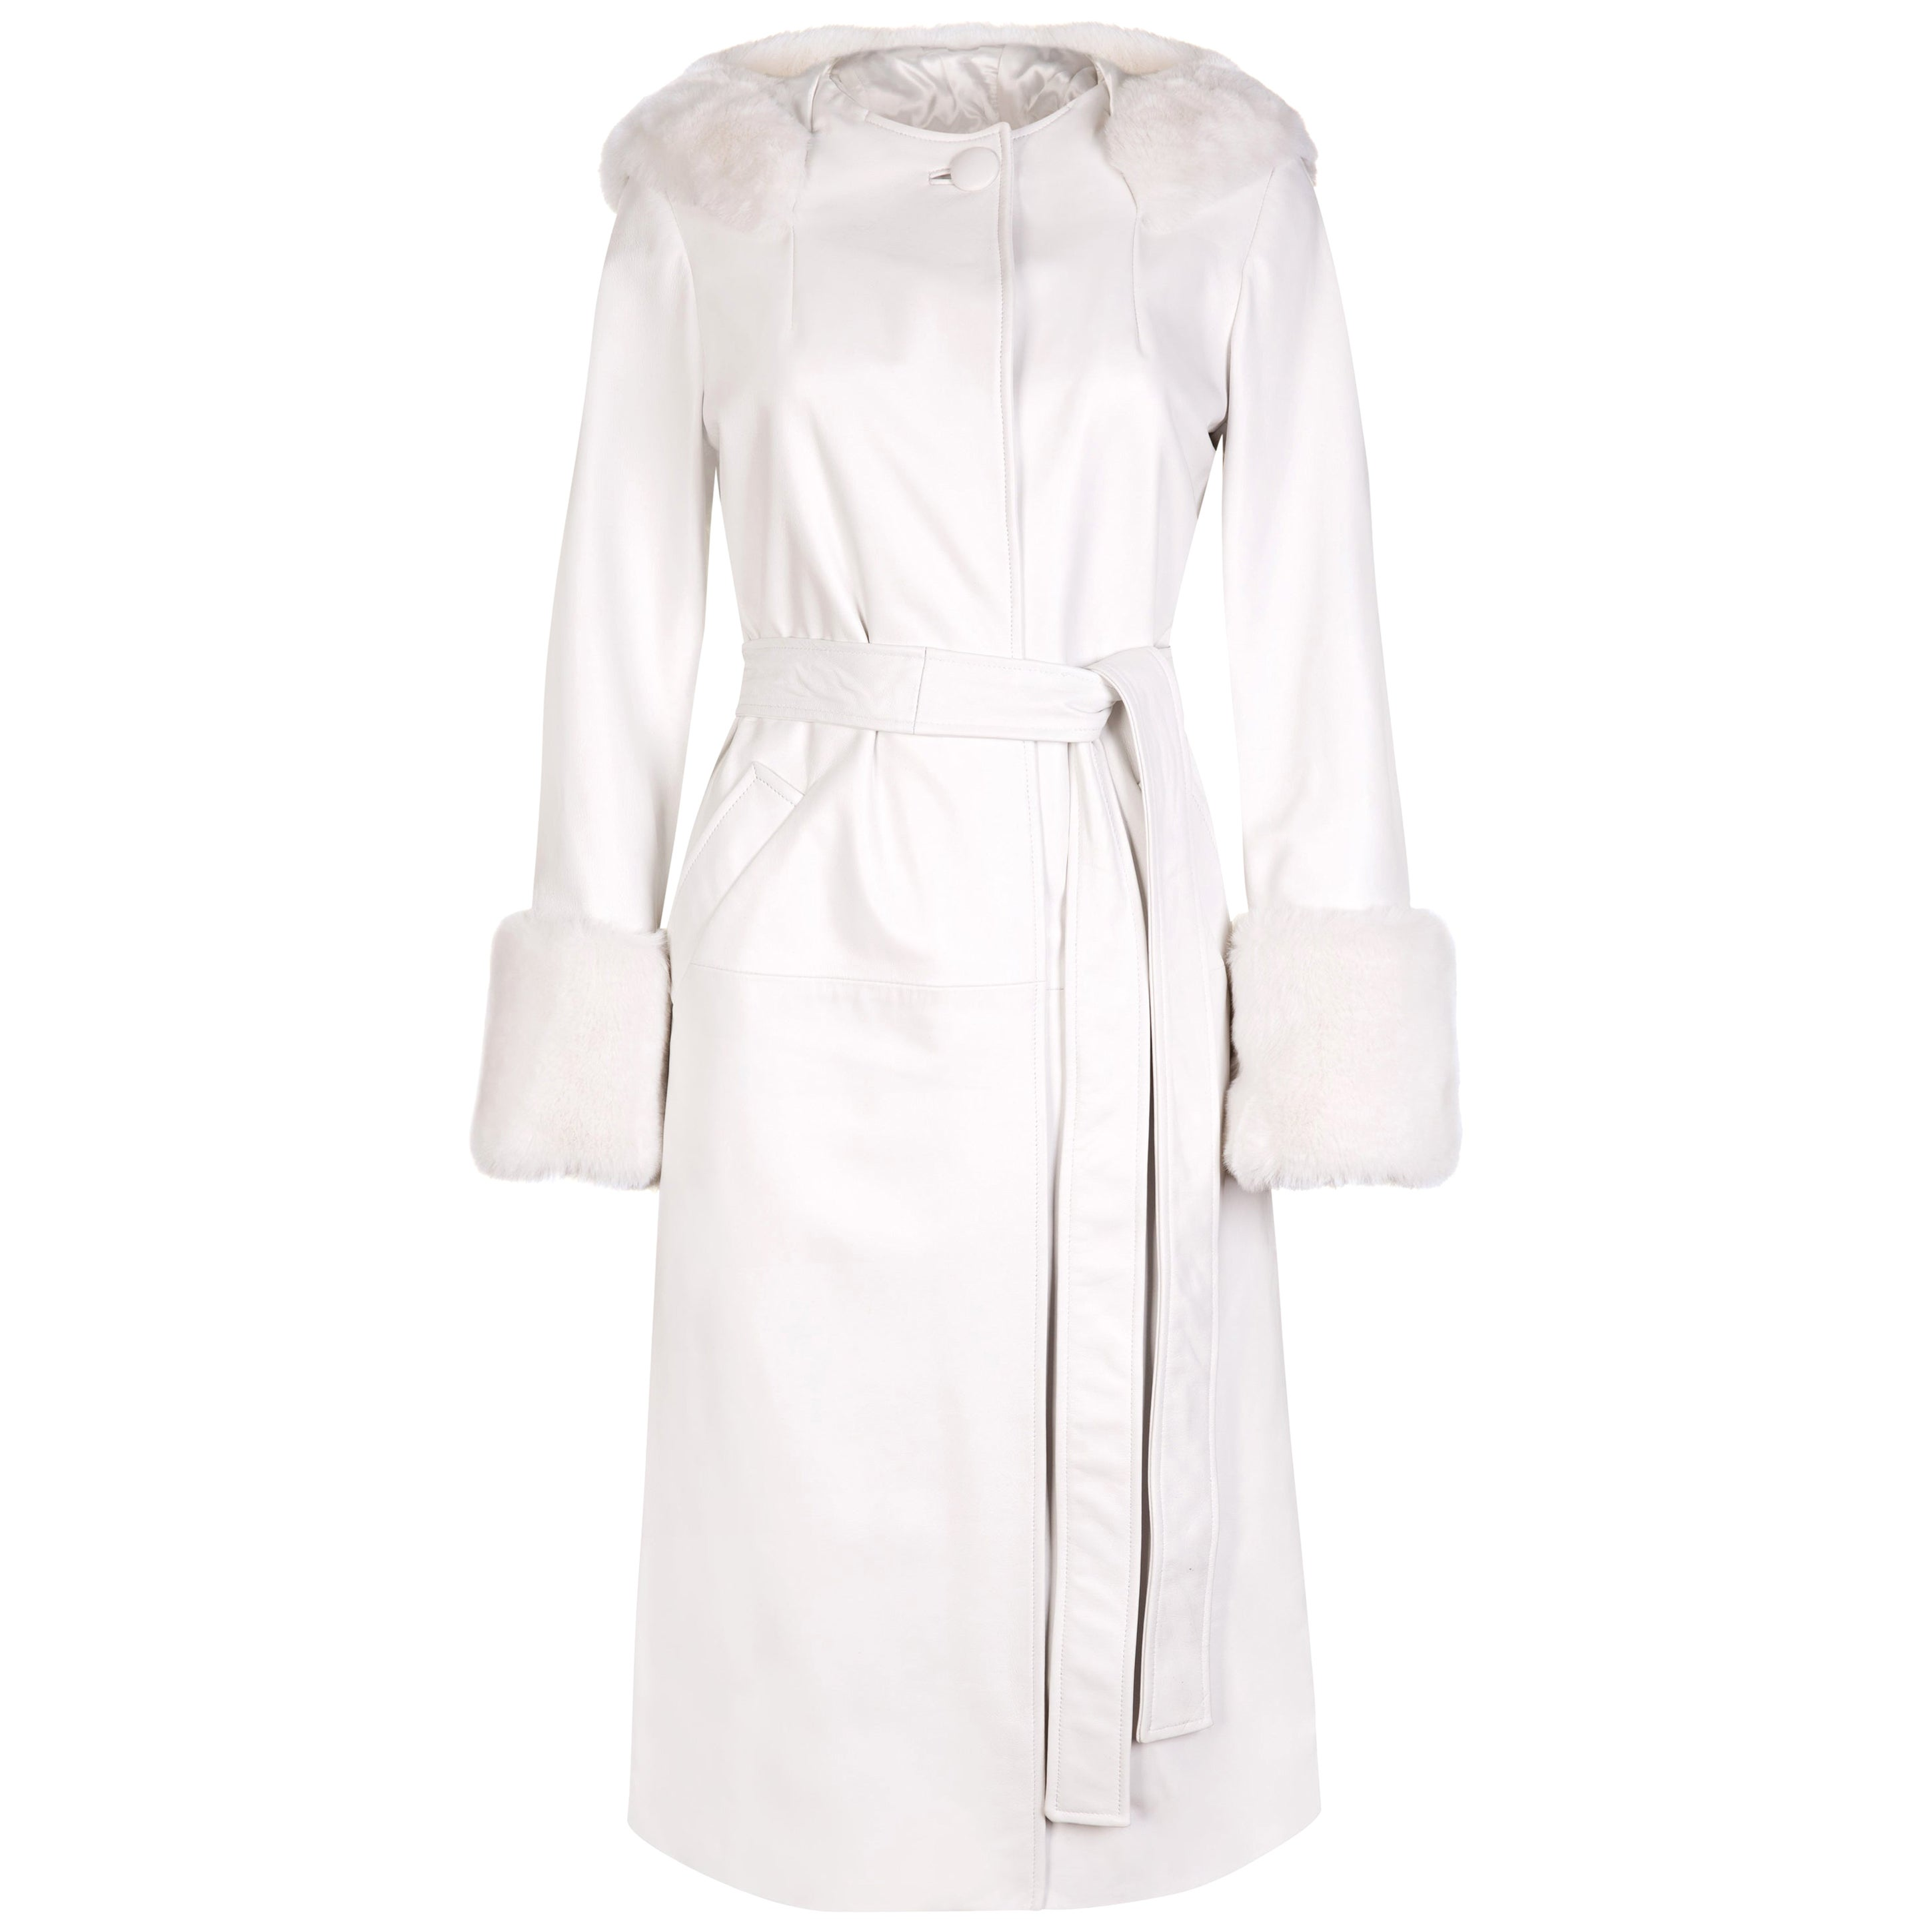 Verheyen Aurora Hooded Leather Trench Coat in White with Faux Fur - Size uk 8